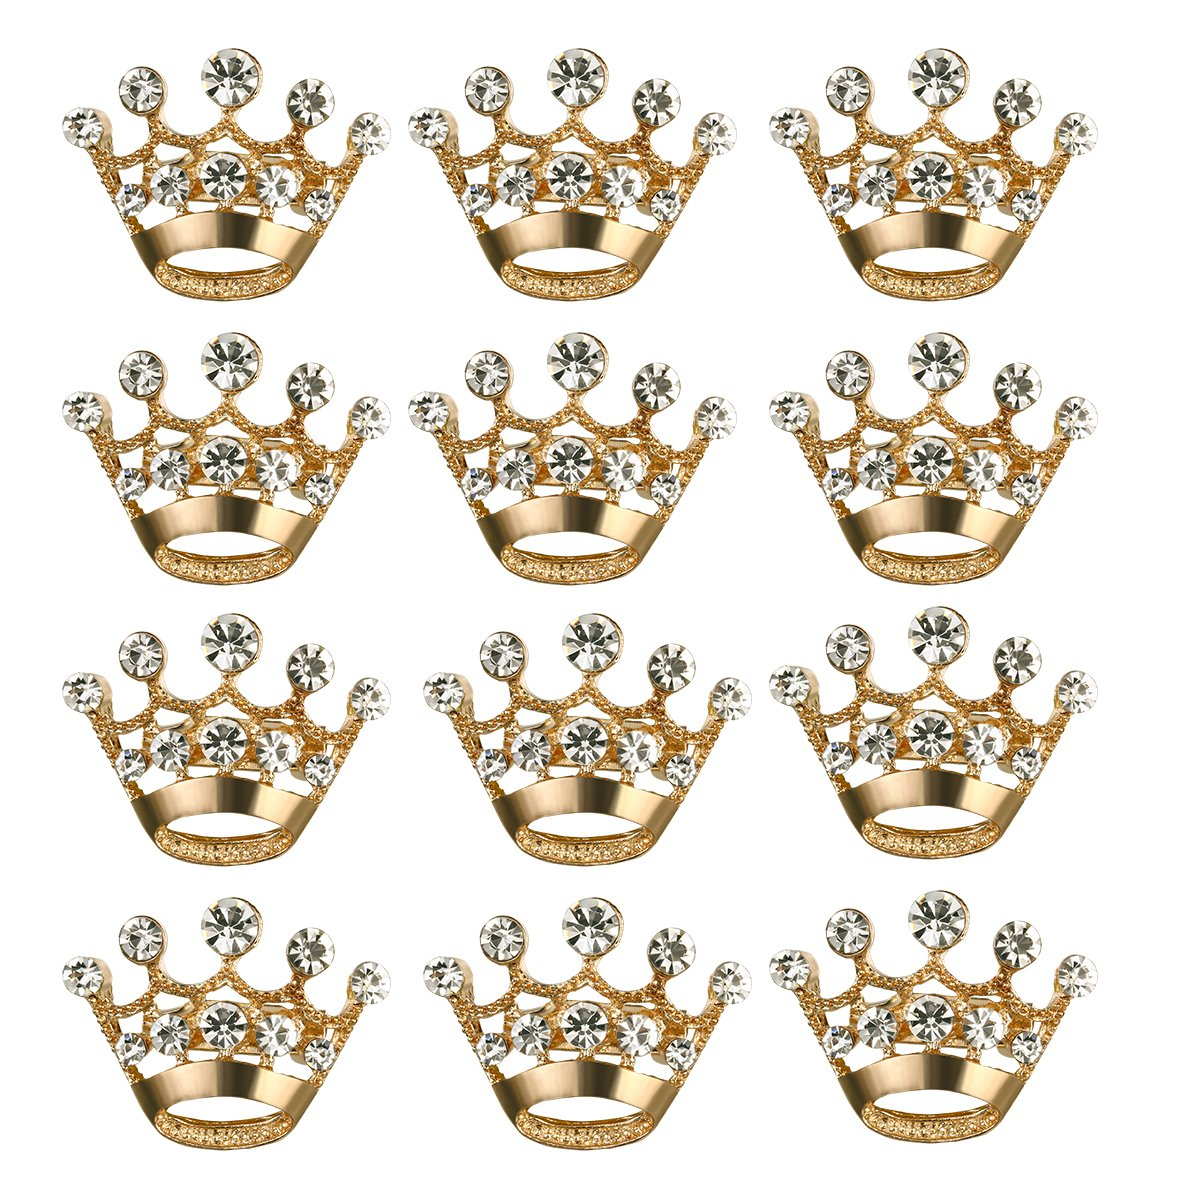 12 piece crown brooch set